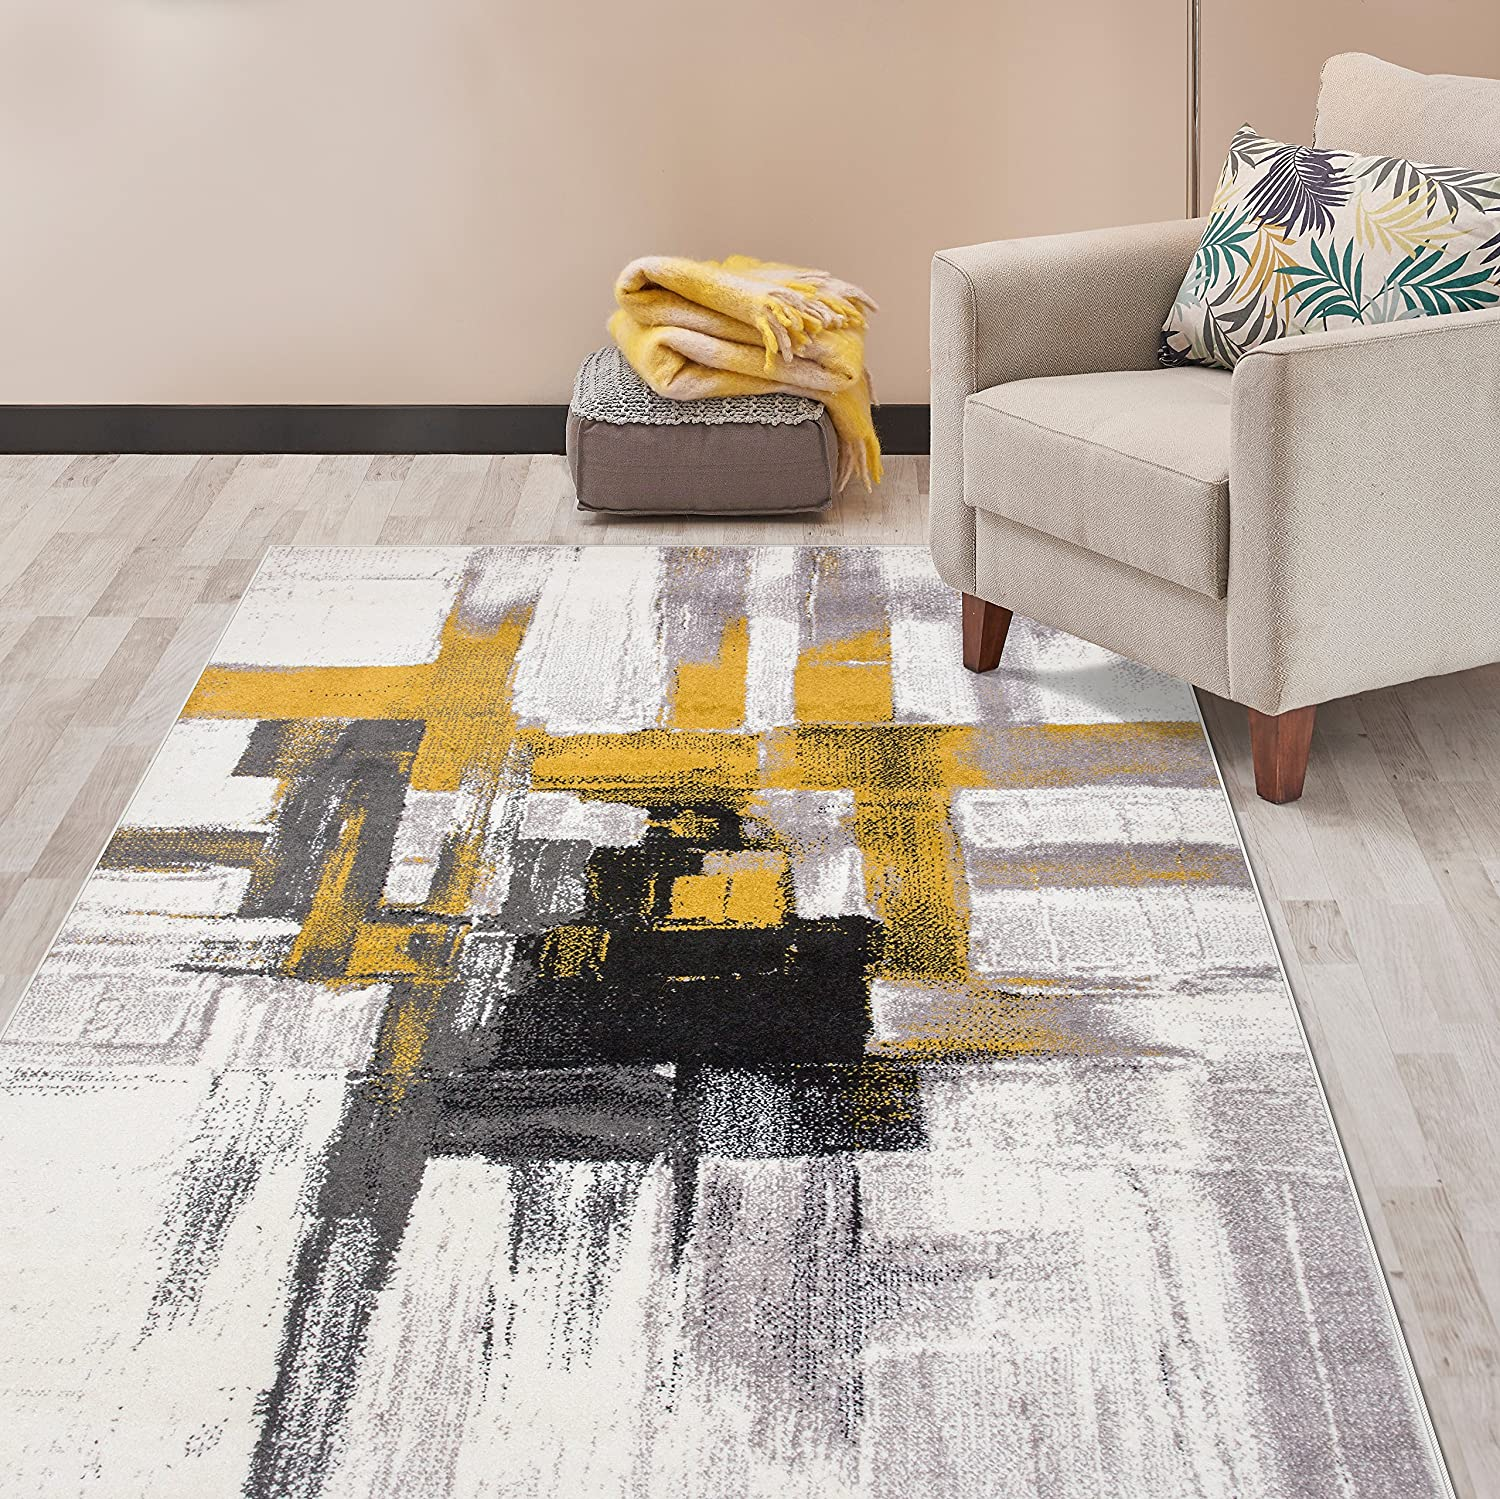 Rugshop Contemporary Modern Abstract Area Rug 5' x 7' Gold